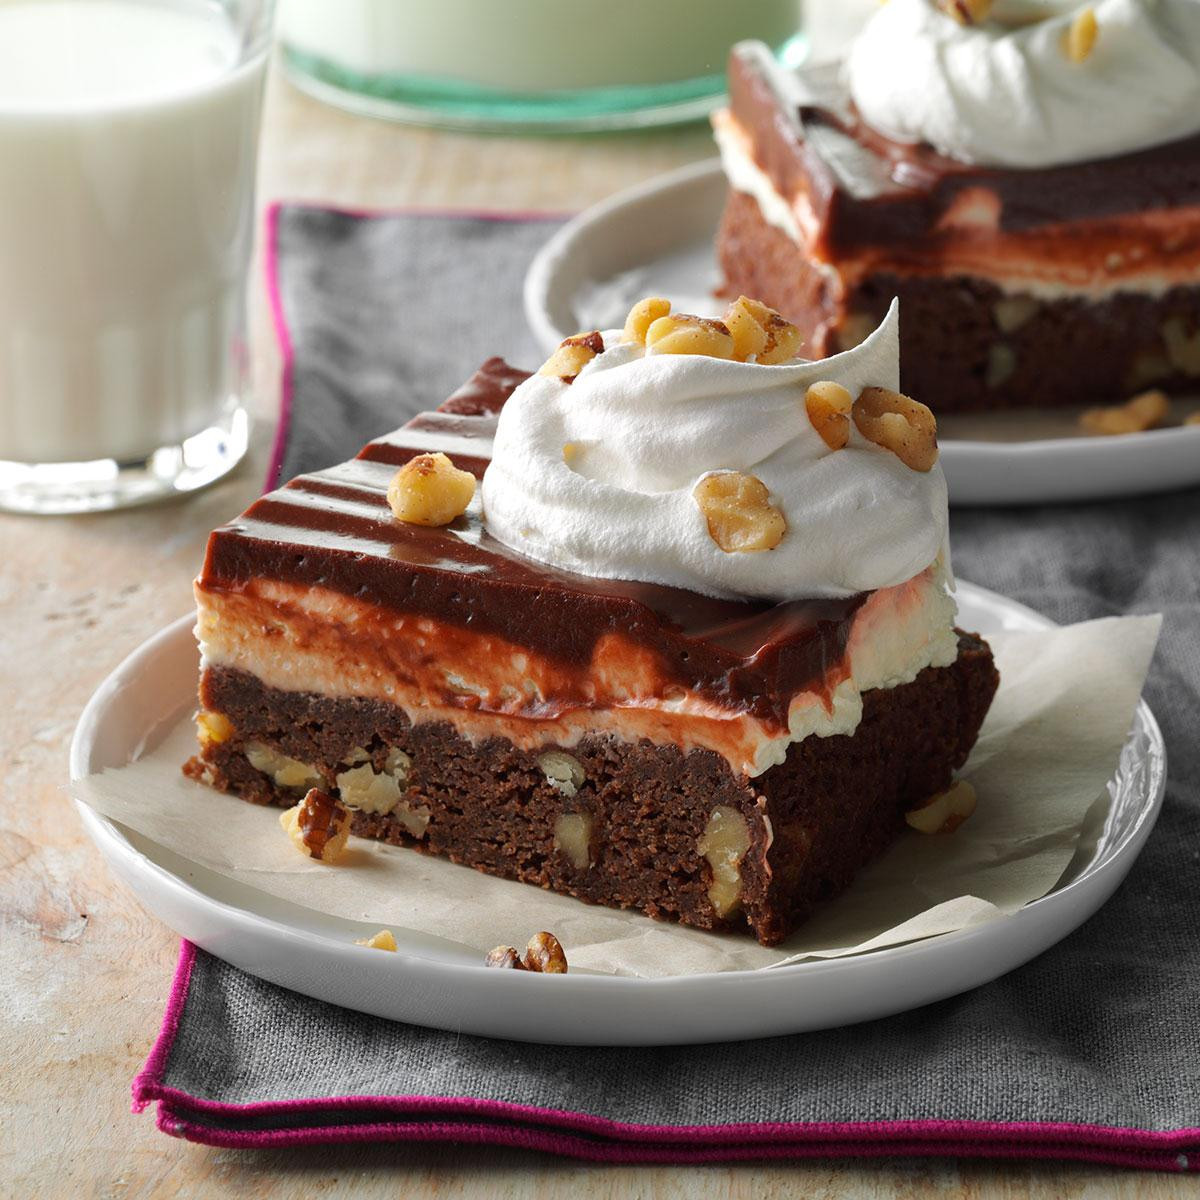 Tasty Dessert Recipes  Layered Brownie Dessert Recipe